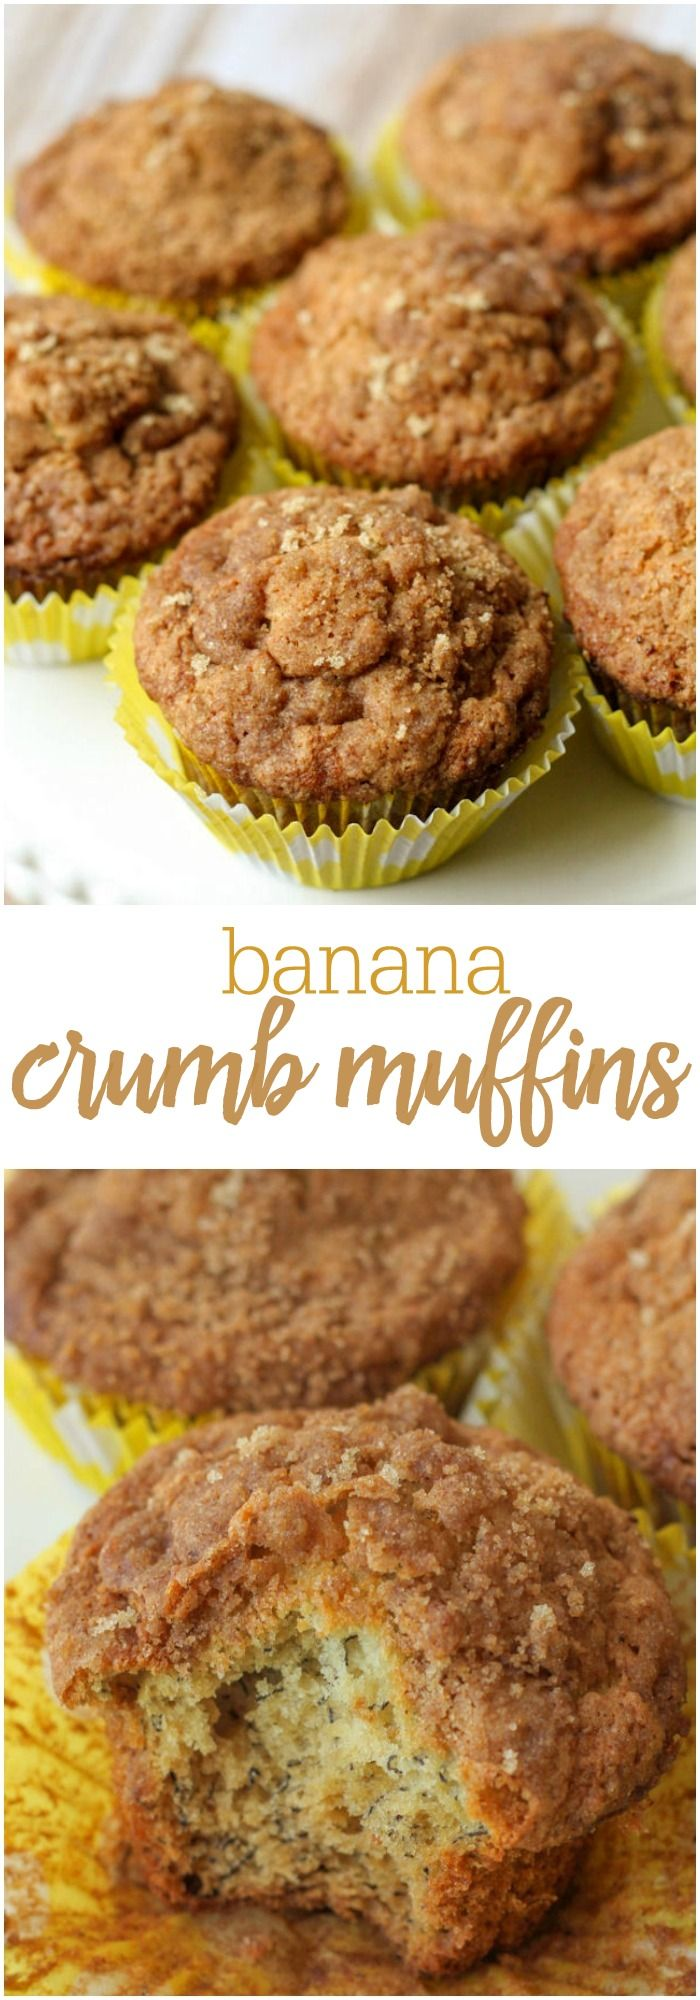 Banana Crumb Muffins - delicious banana muffins topped with a crumbly brown sugar and cinnamon topping! So good!!